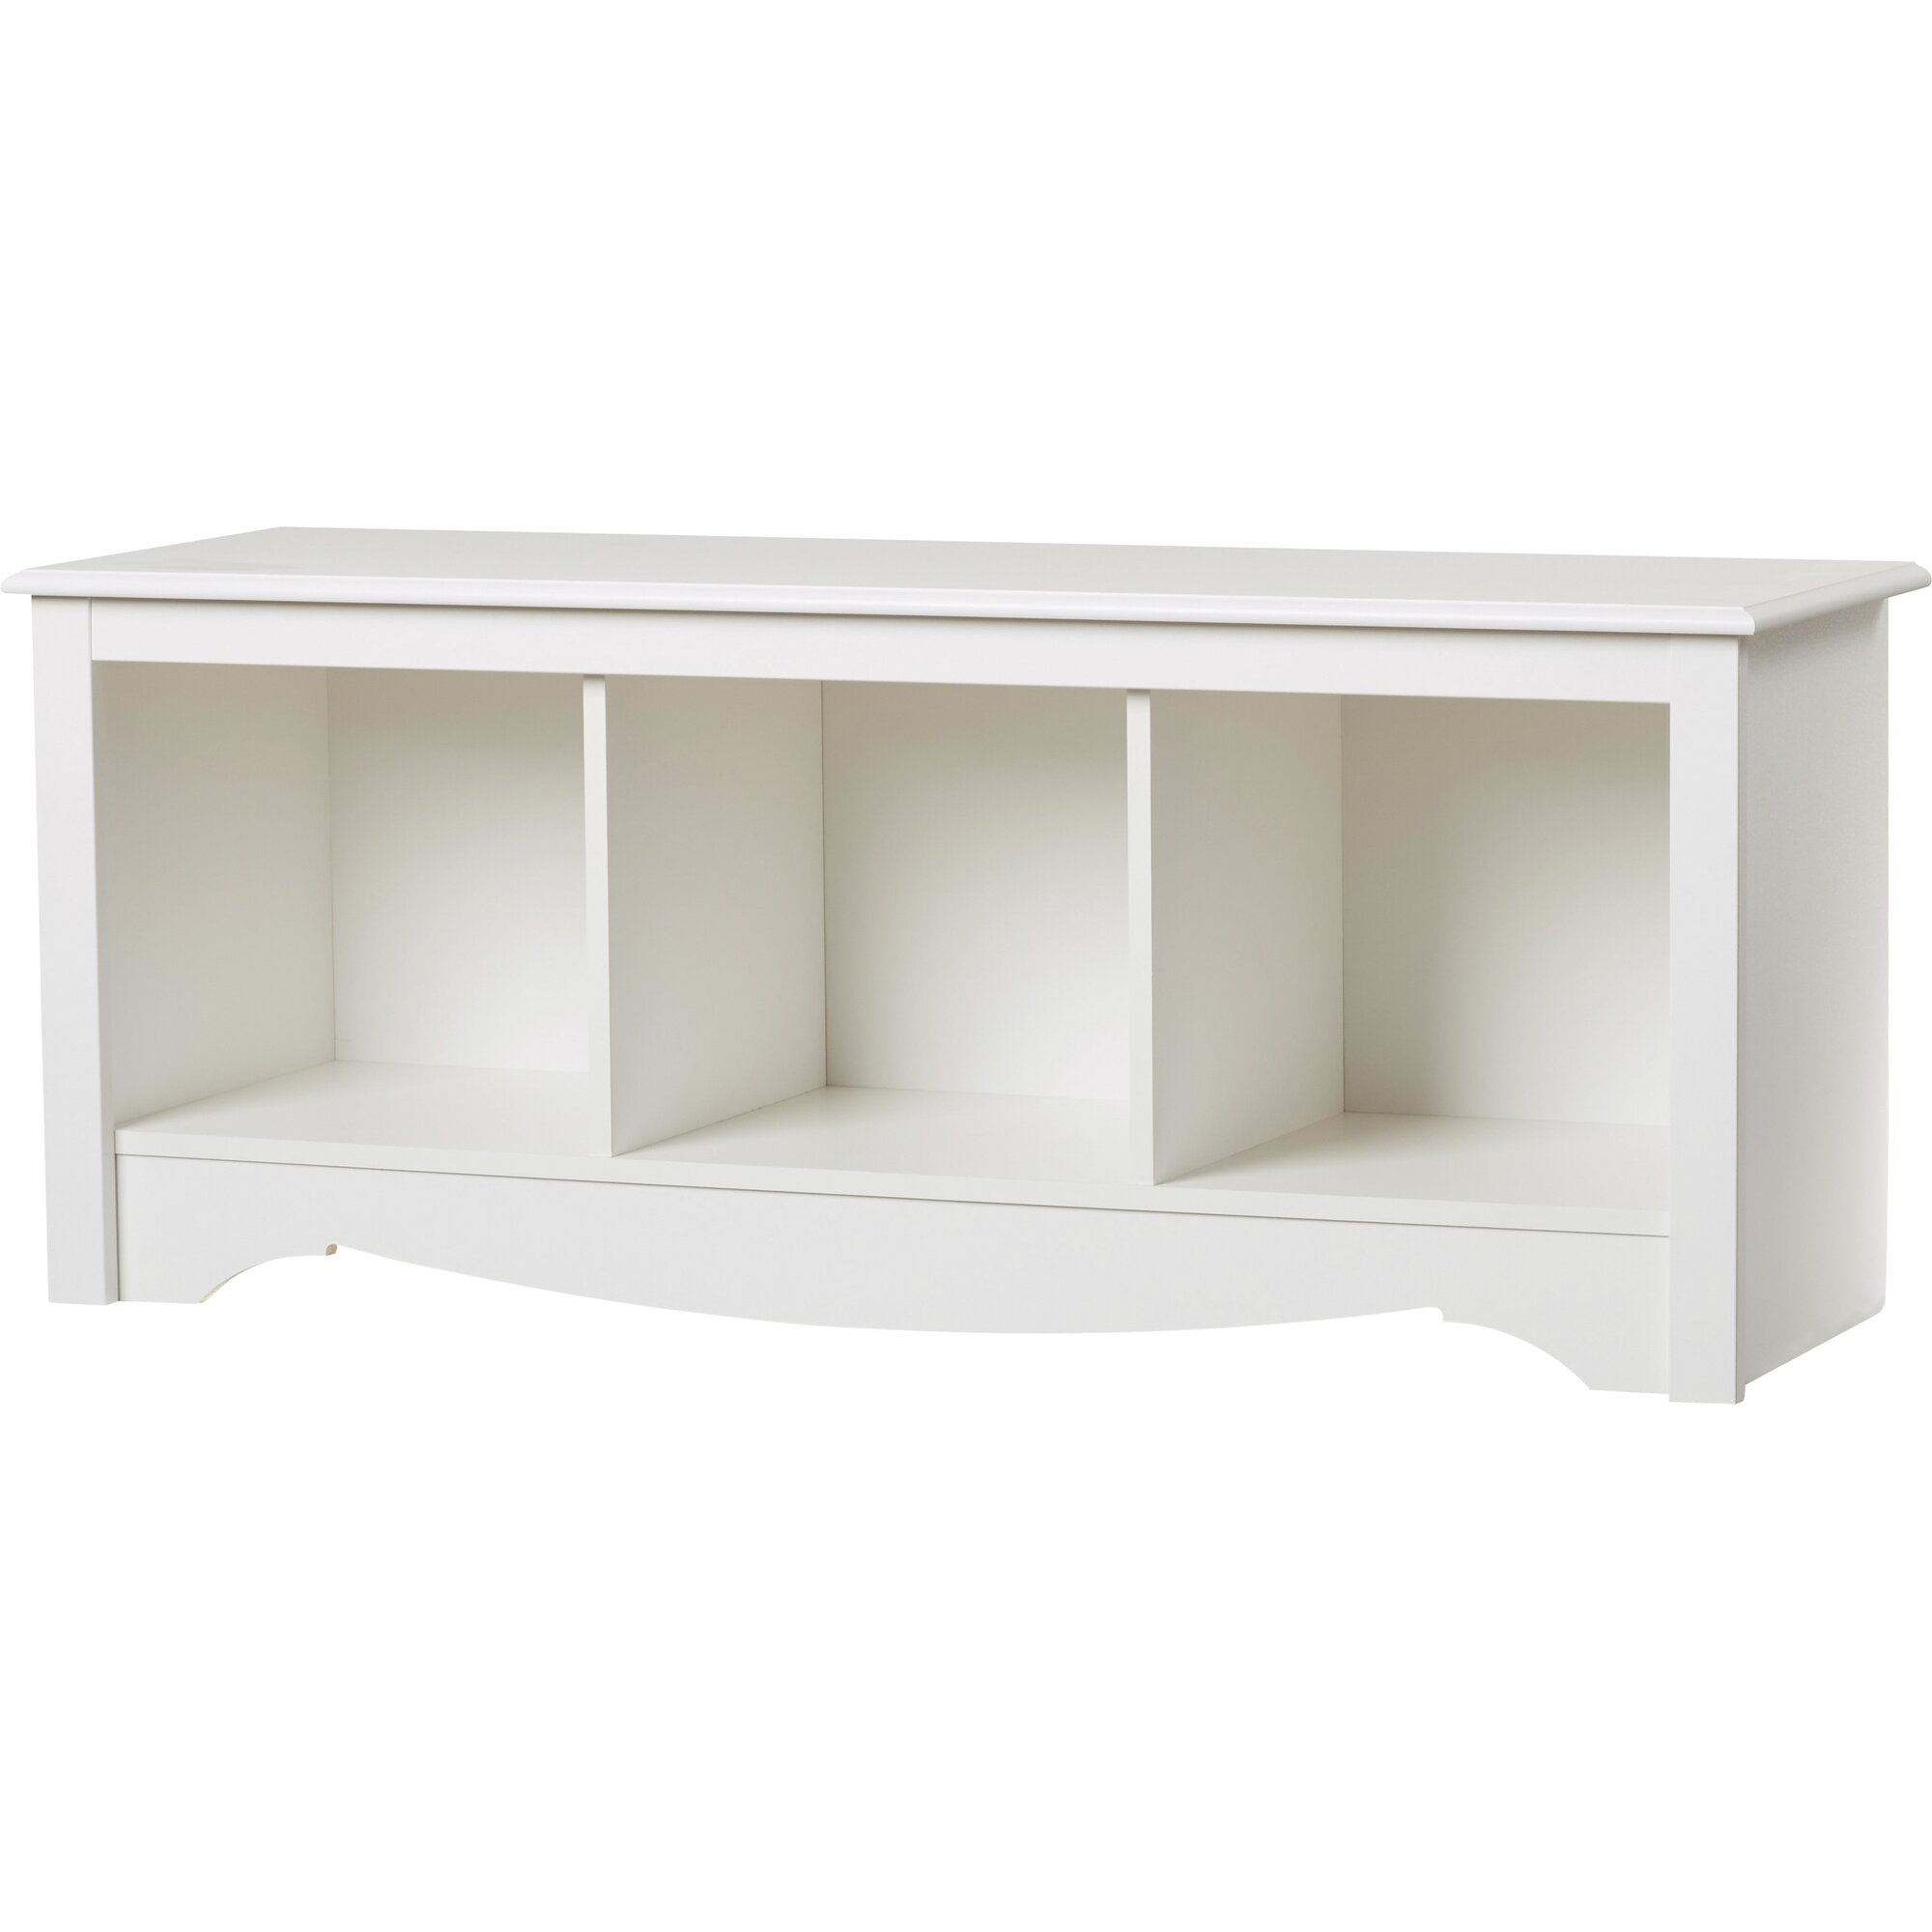 Bedroom bench with arms - Sybil Storage Bedroom Bench